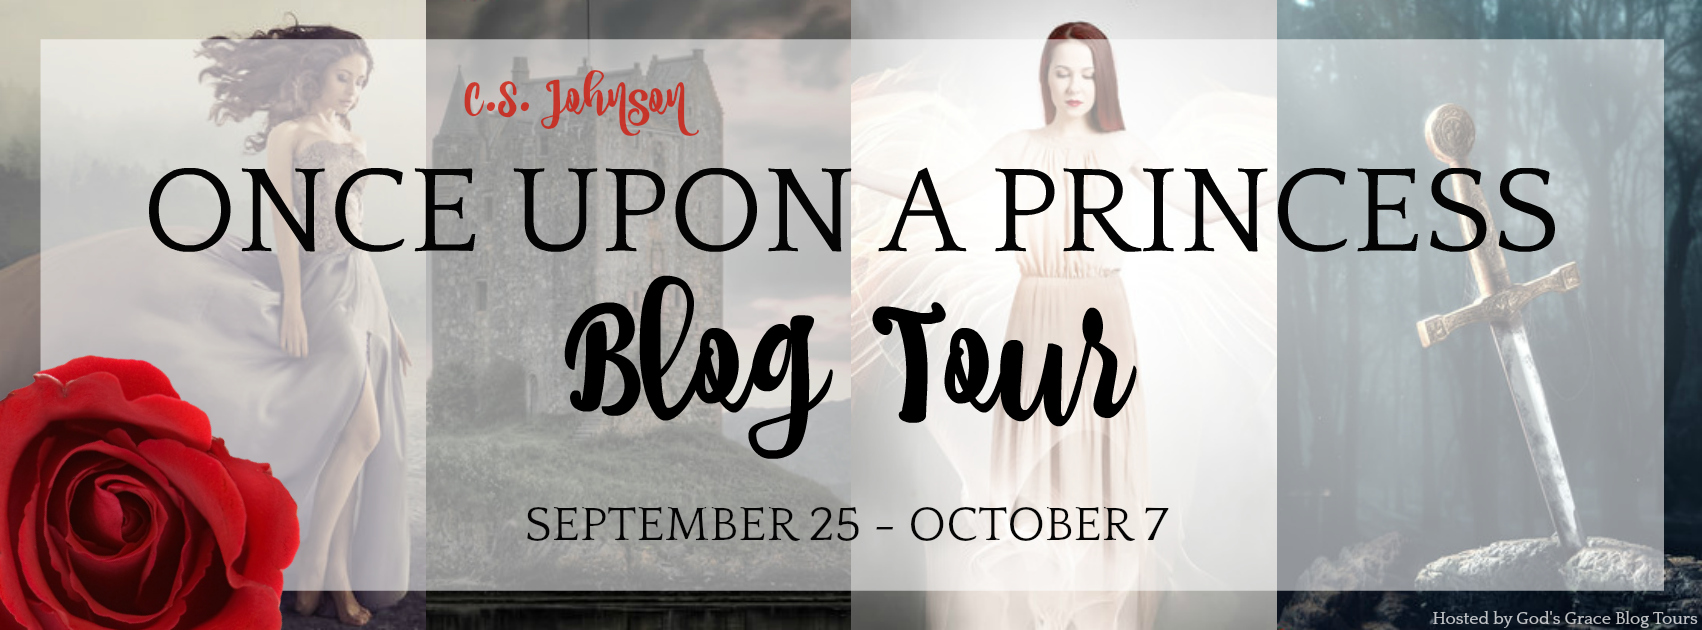 Once Upon A Princess Blog Tour